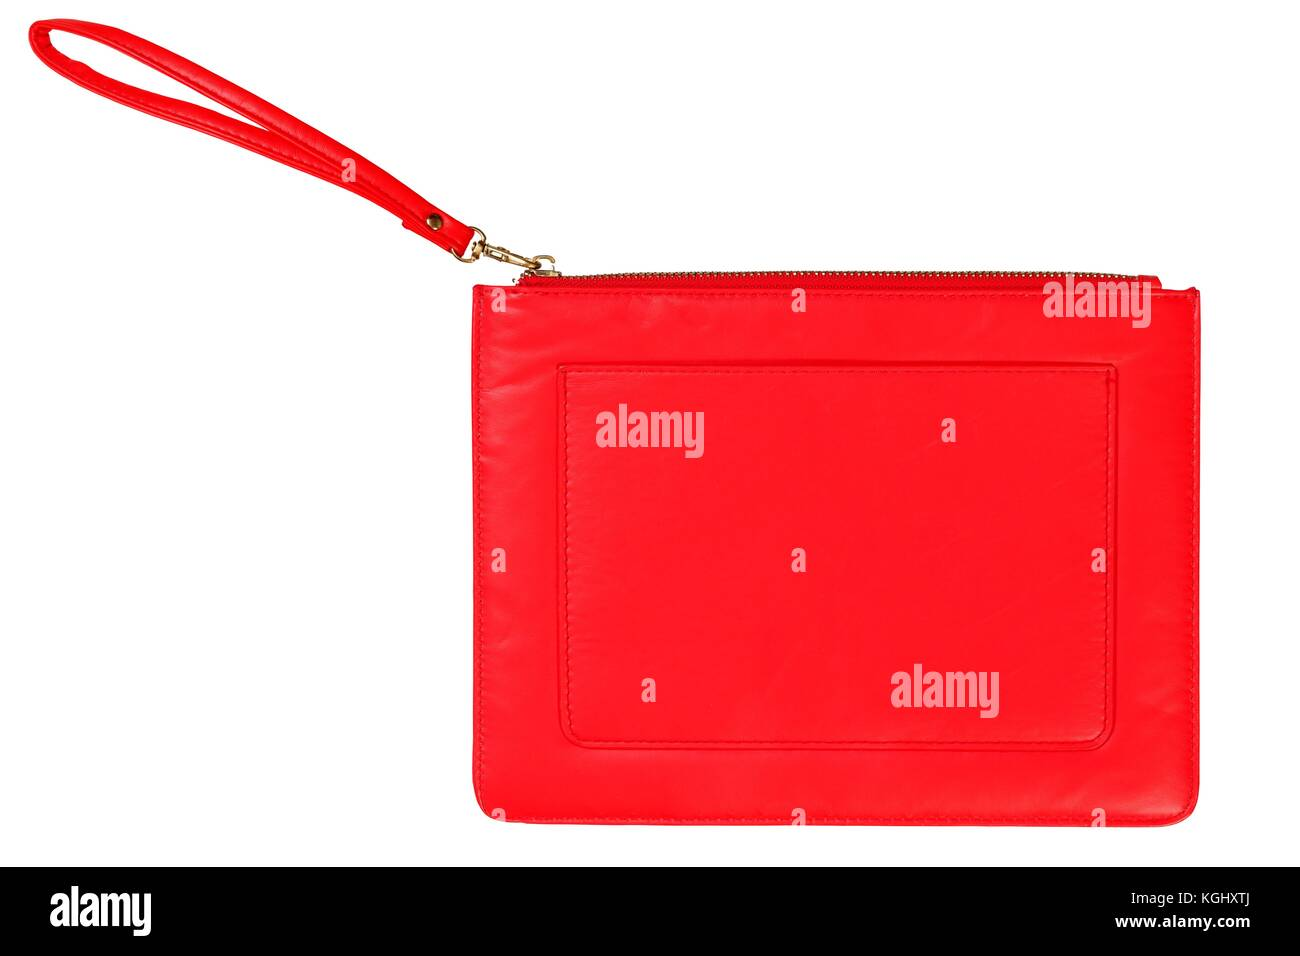 Small red cocktail handbag isolated on white background - Stock Image